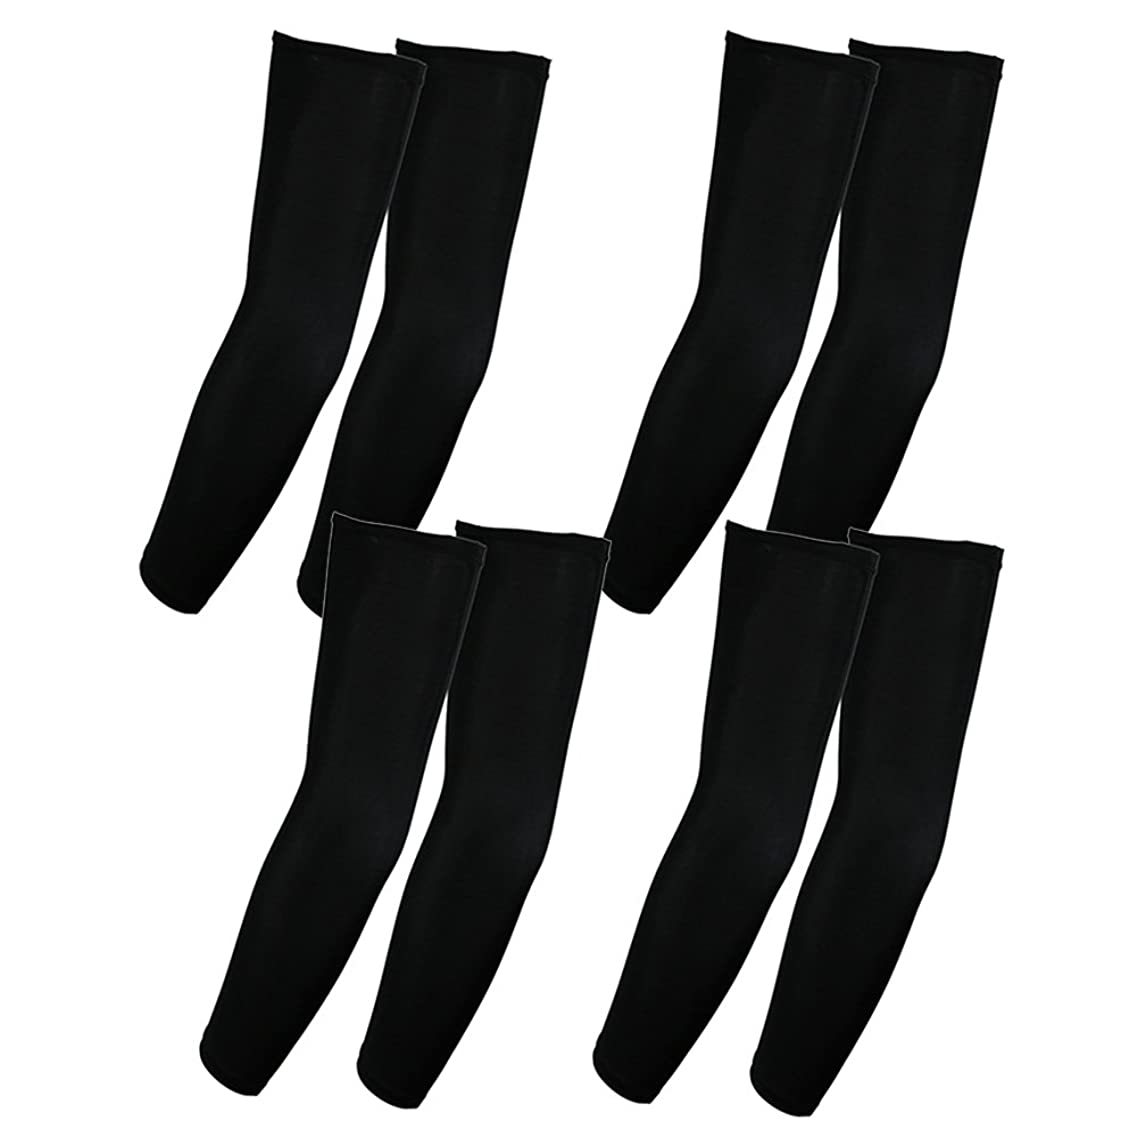 Elixir Golf The 4 Pairs UV Protective Compression Arm Sleeves for Bike Hiking Golf Cycling All Outdoor Activities